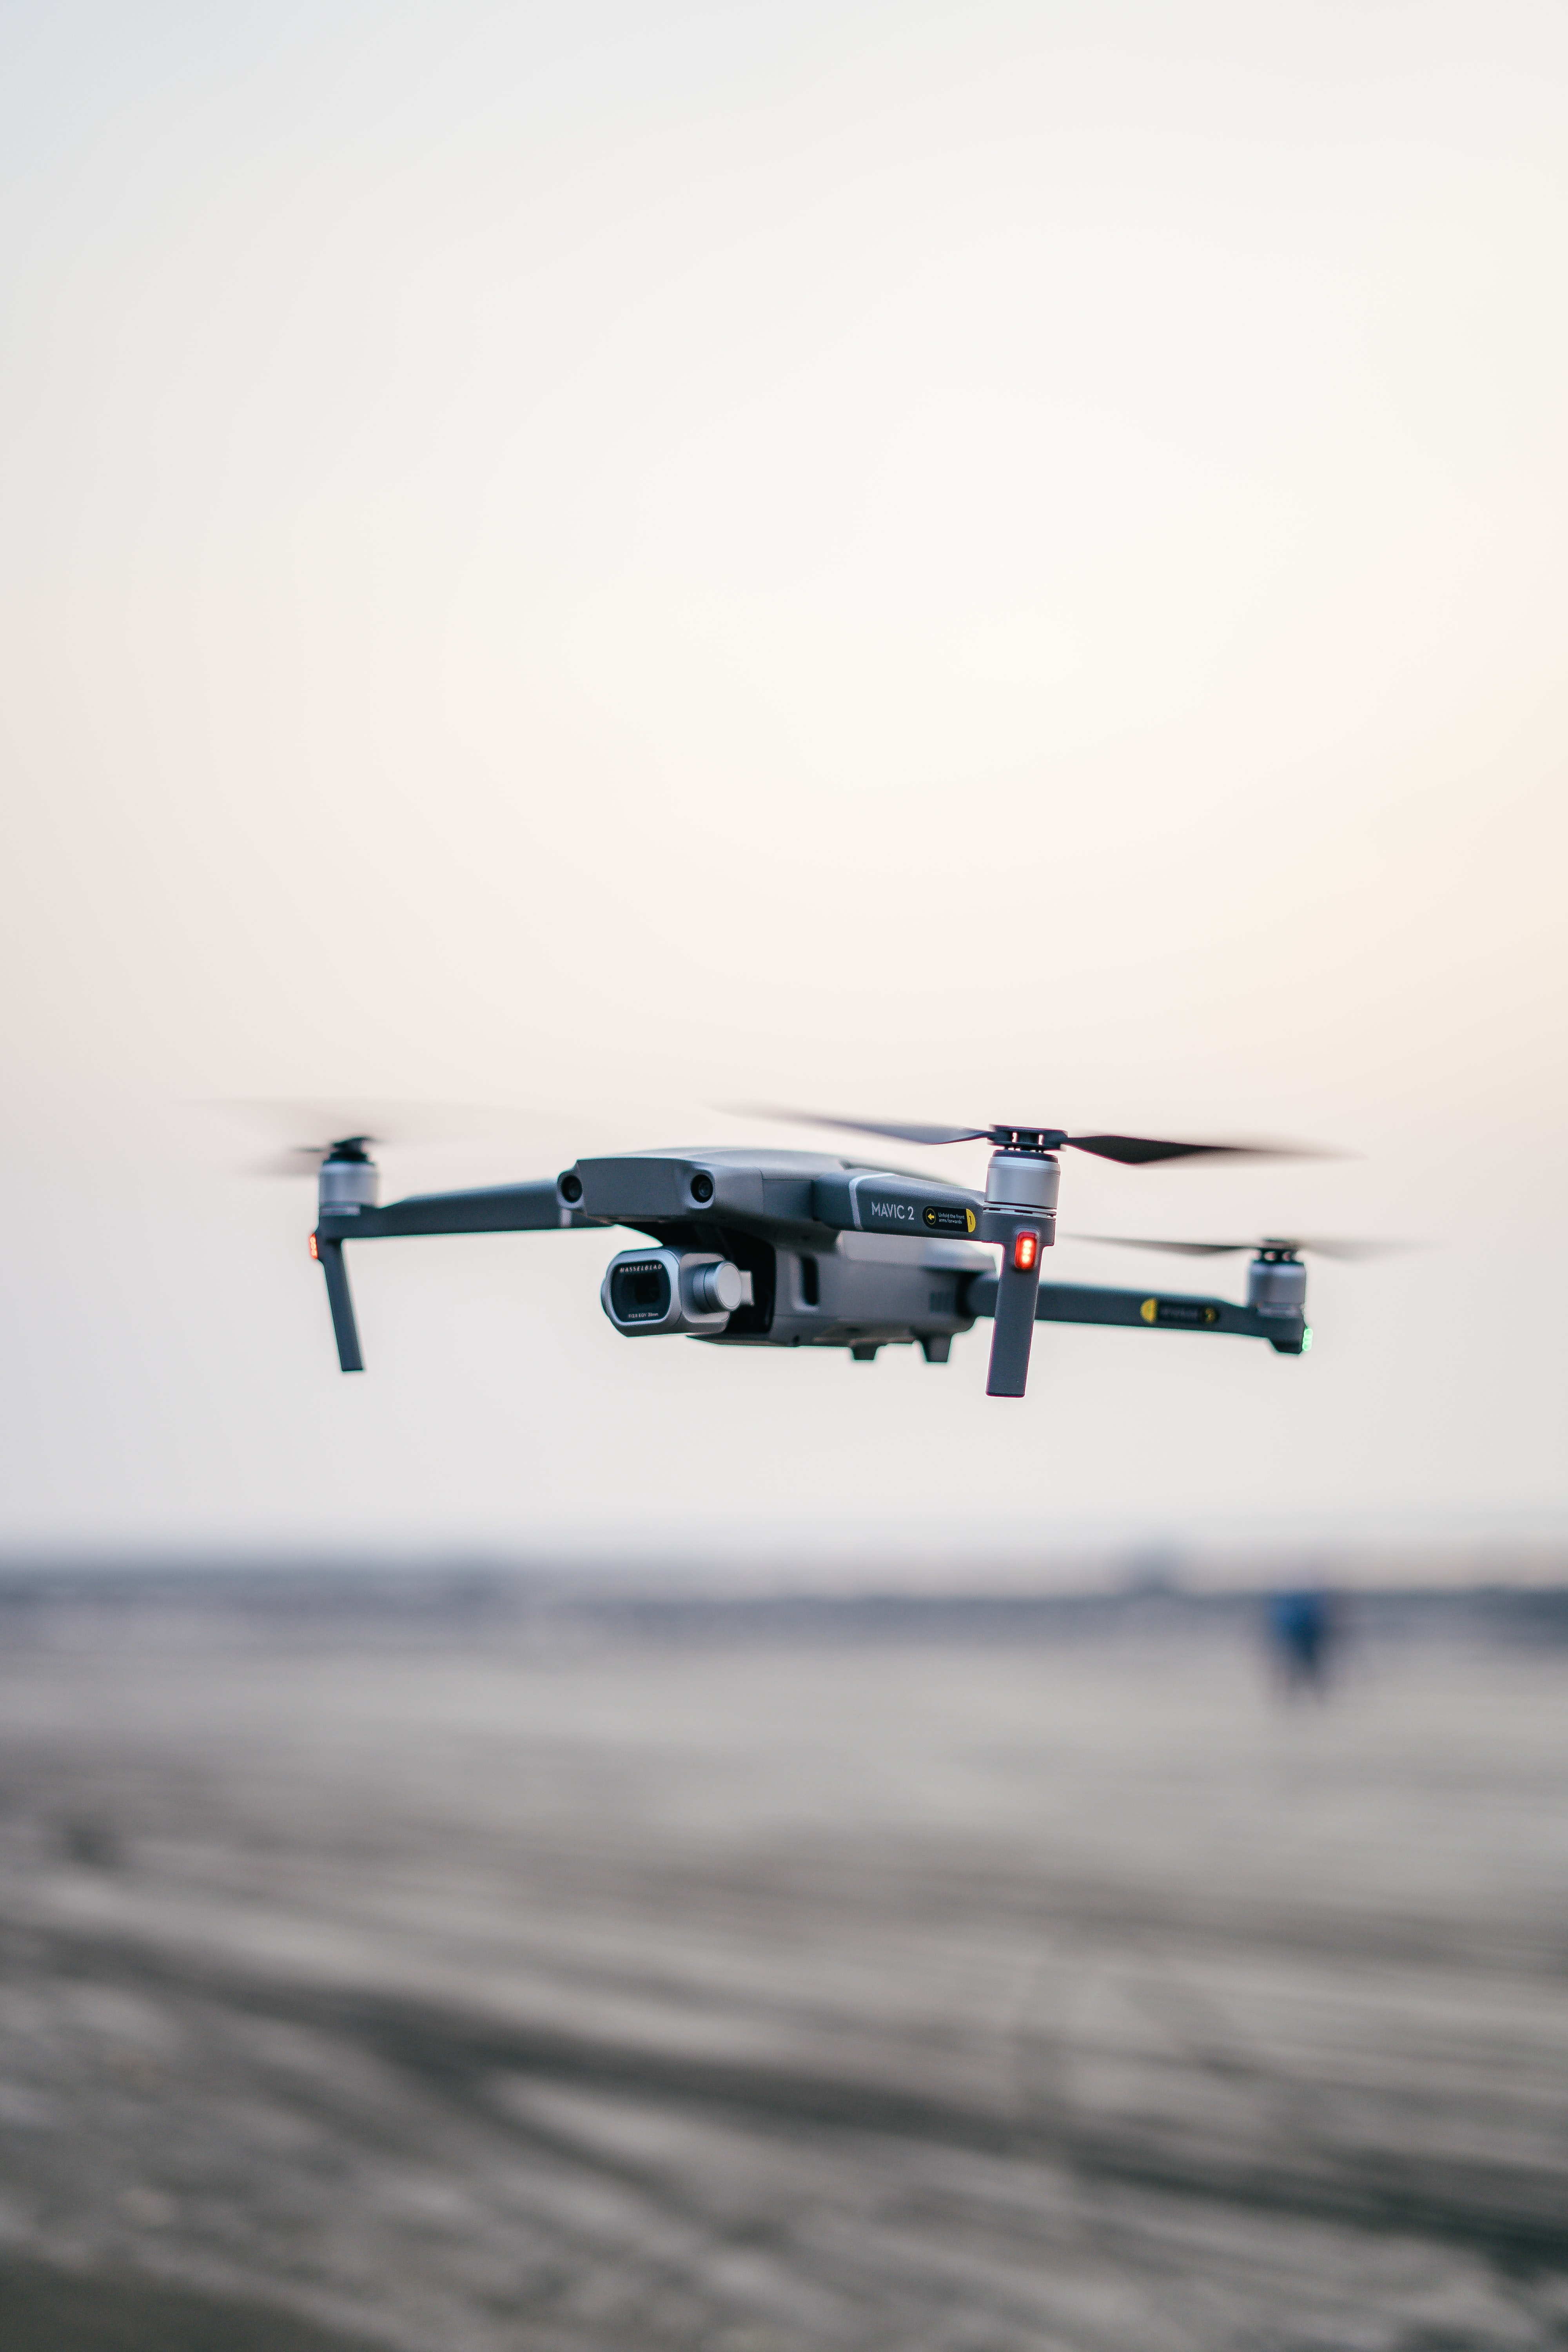 drone flying above the ground